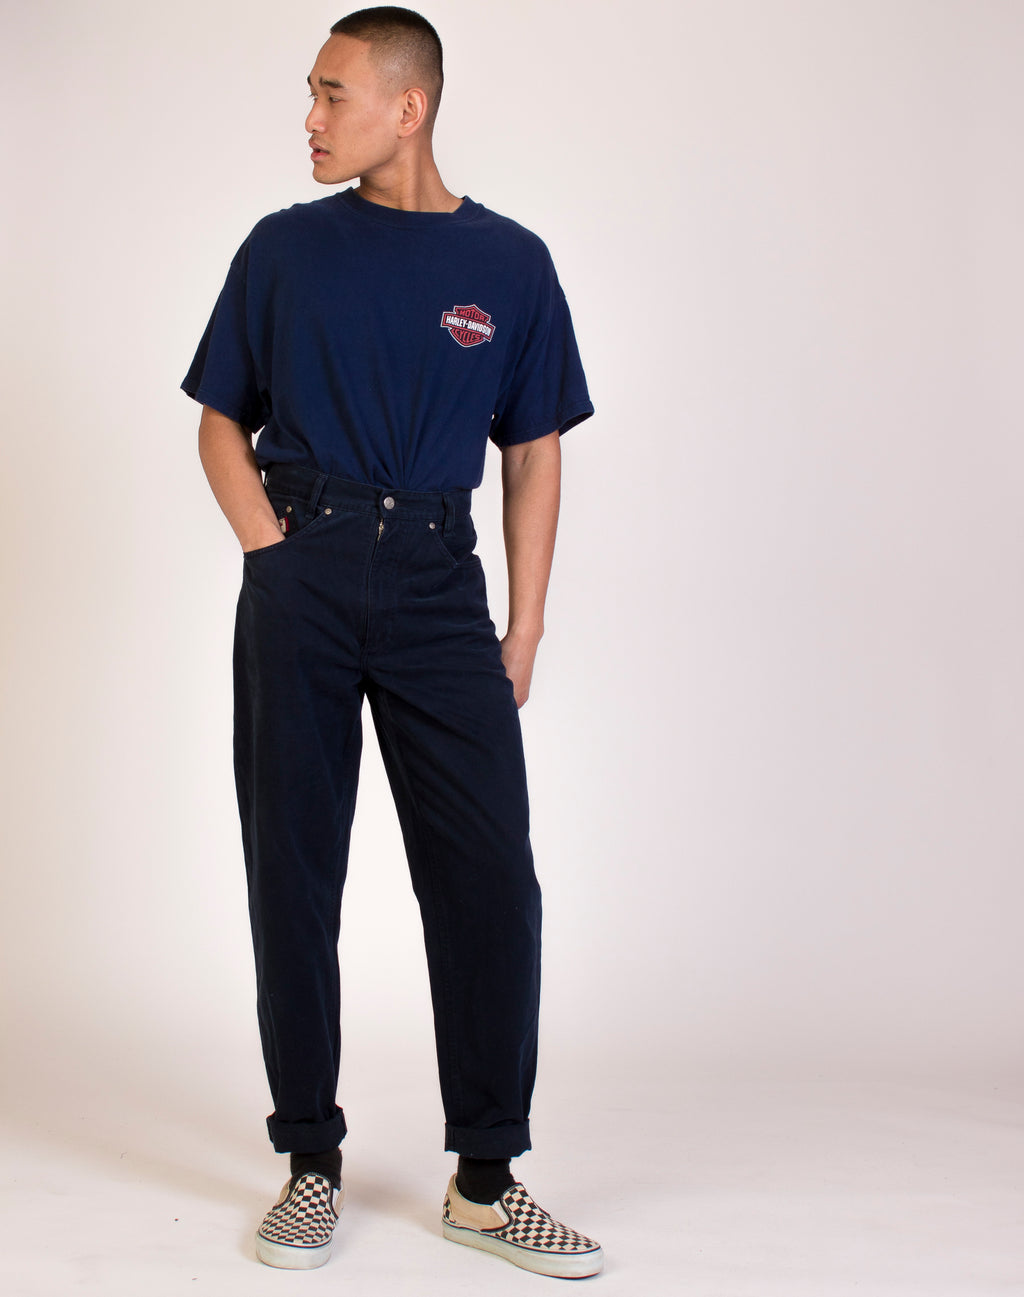 NAVY DAD JEANS